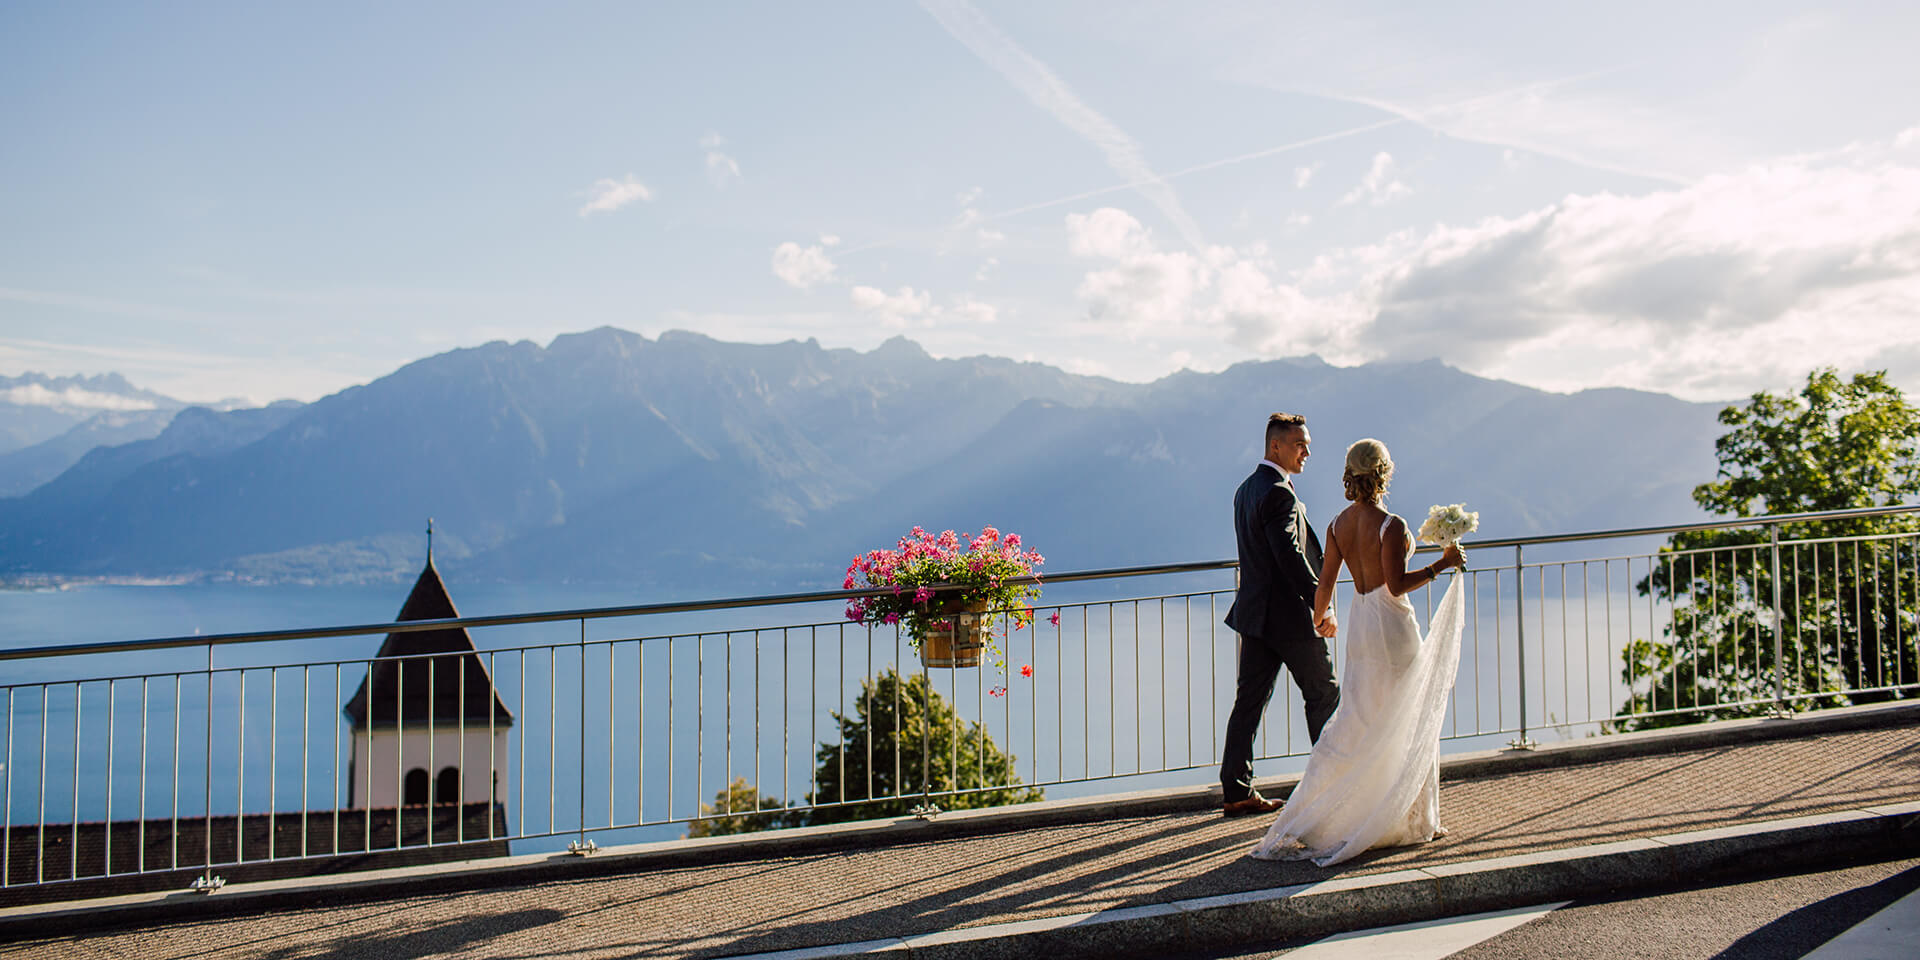 Vevey Montreux Swiss Riviera Wedding Photographer and Videographer